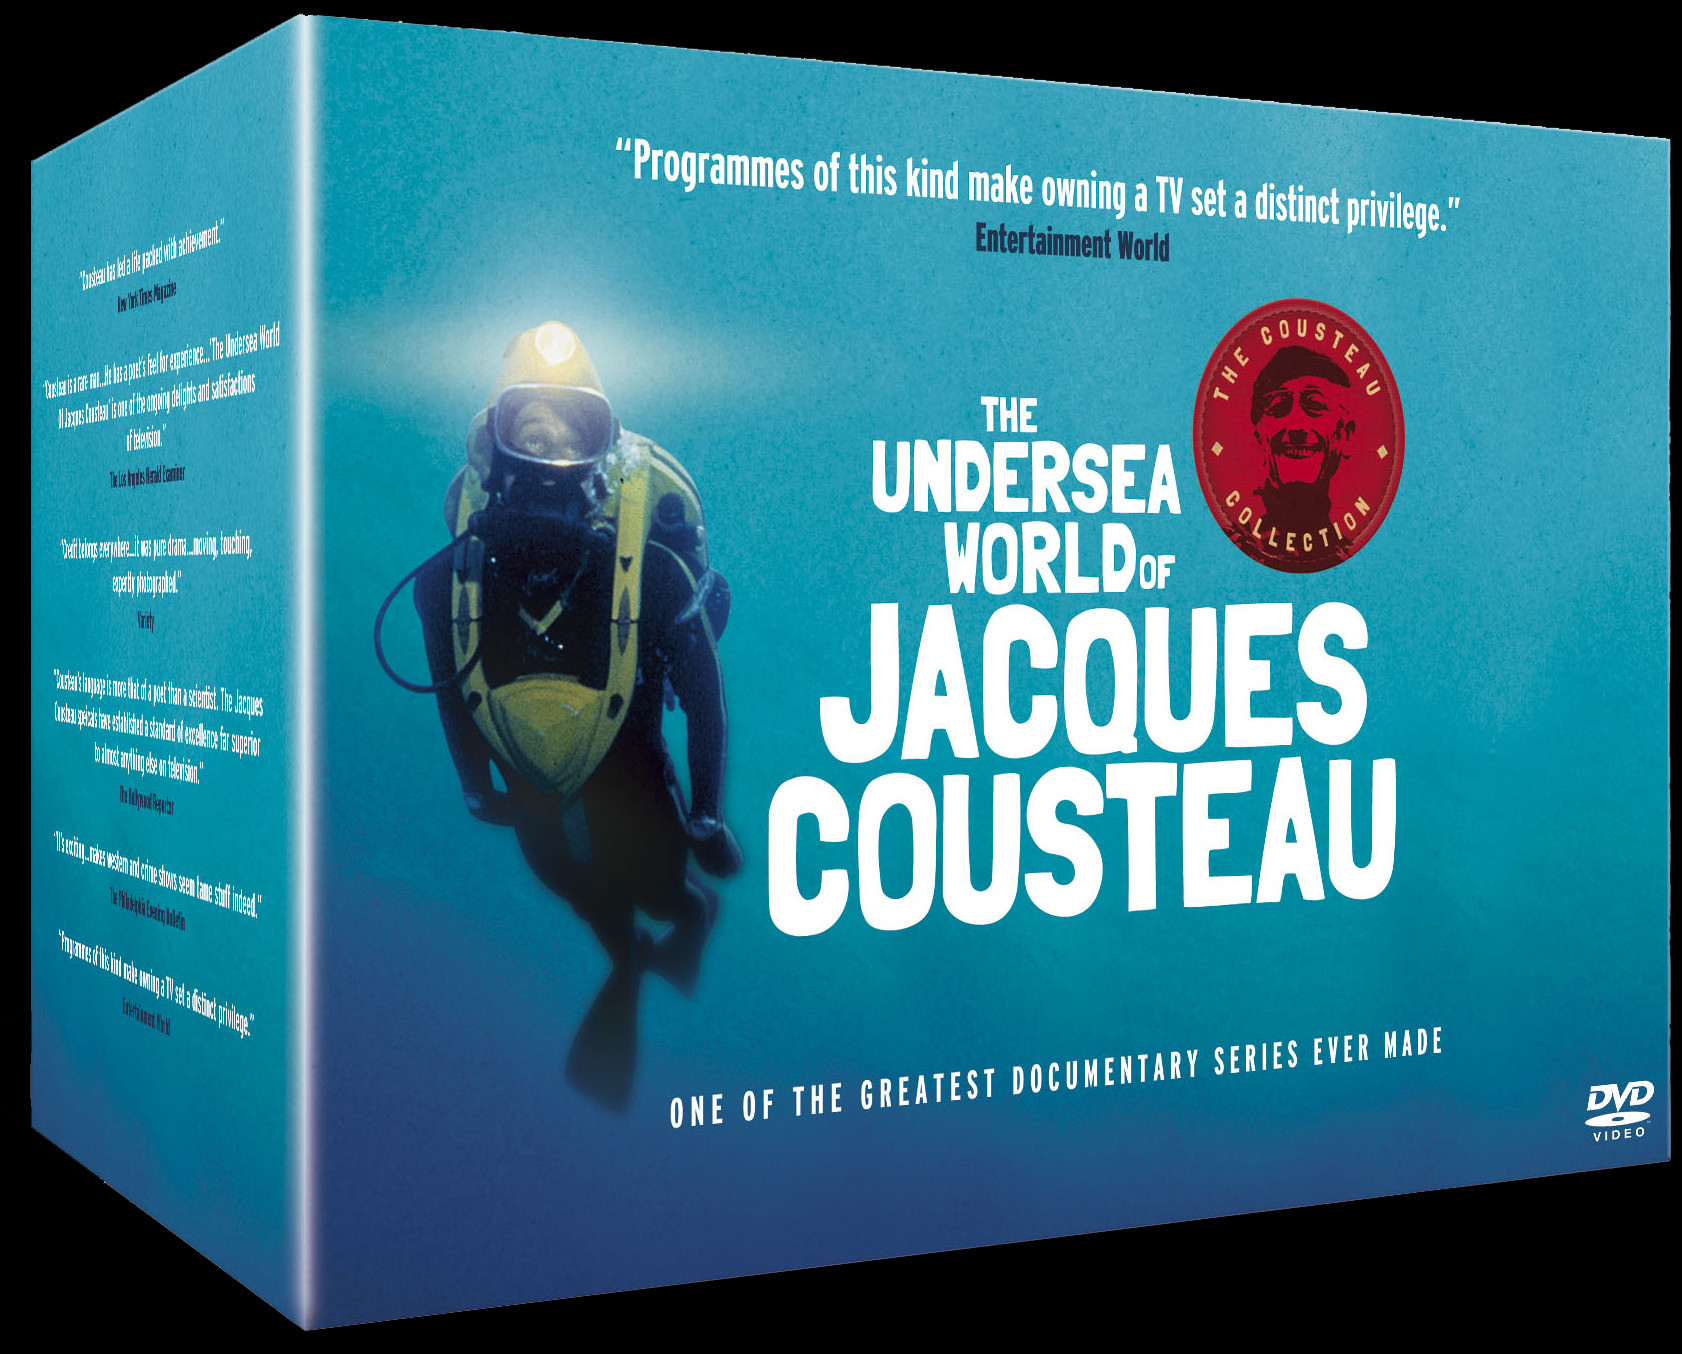 jacques-cousteau-undersea-world-box-set